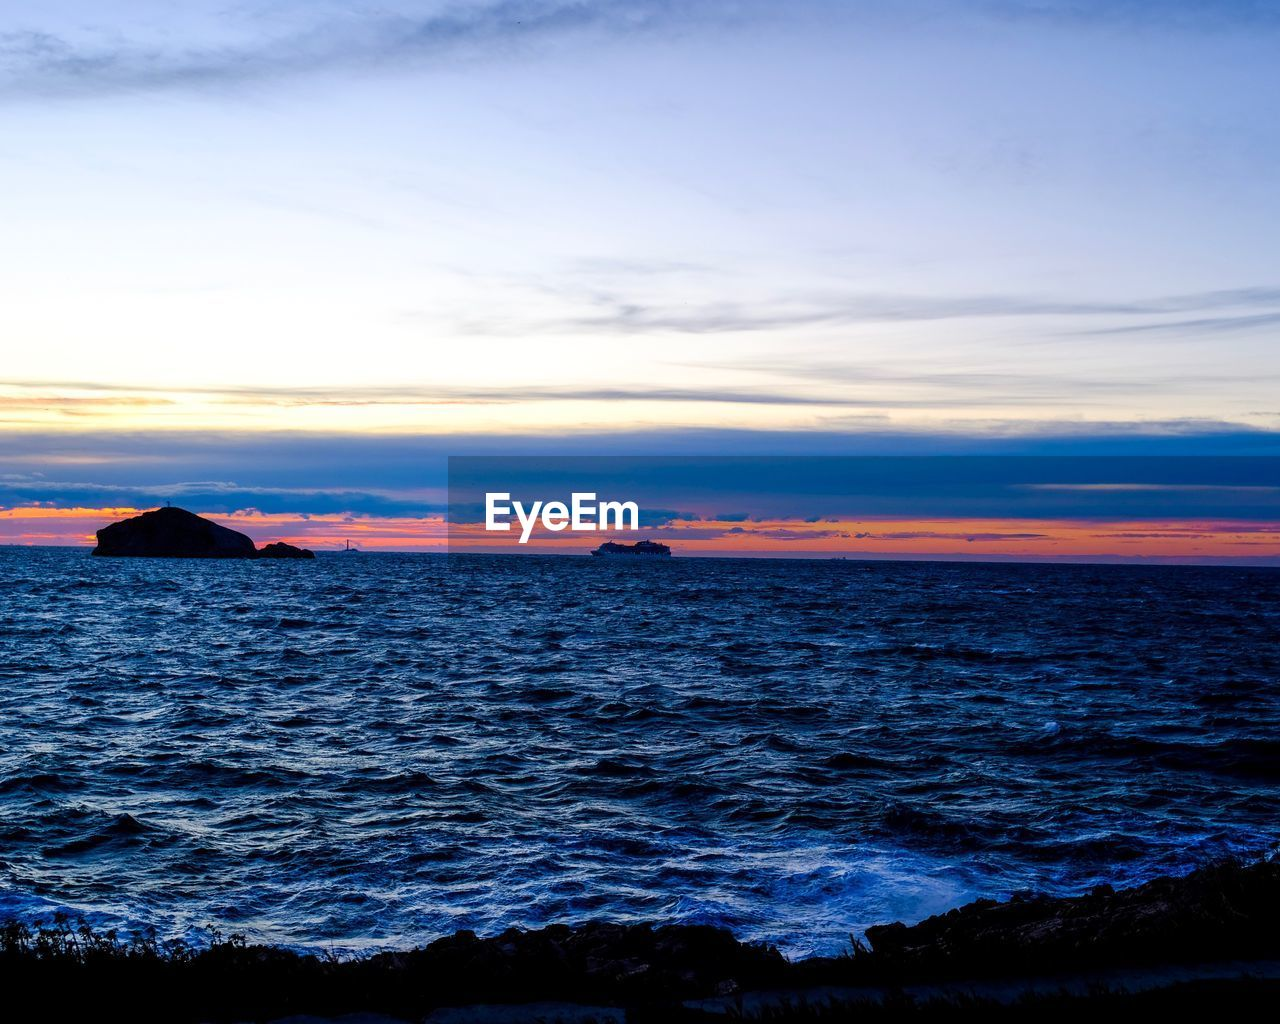 sea, beauty in nature, scenics, sky, sunset, tranquil scene, nature, water, horizon over water, tranquility, idyllic, no people, outdoors, cloud - sky, beach, day